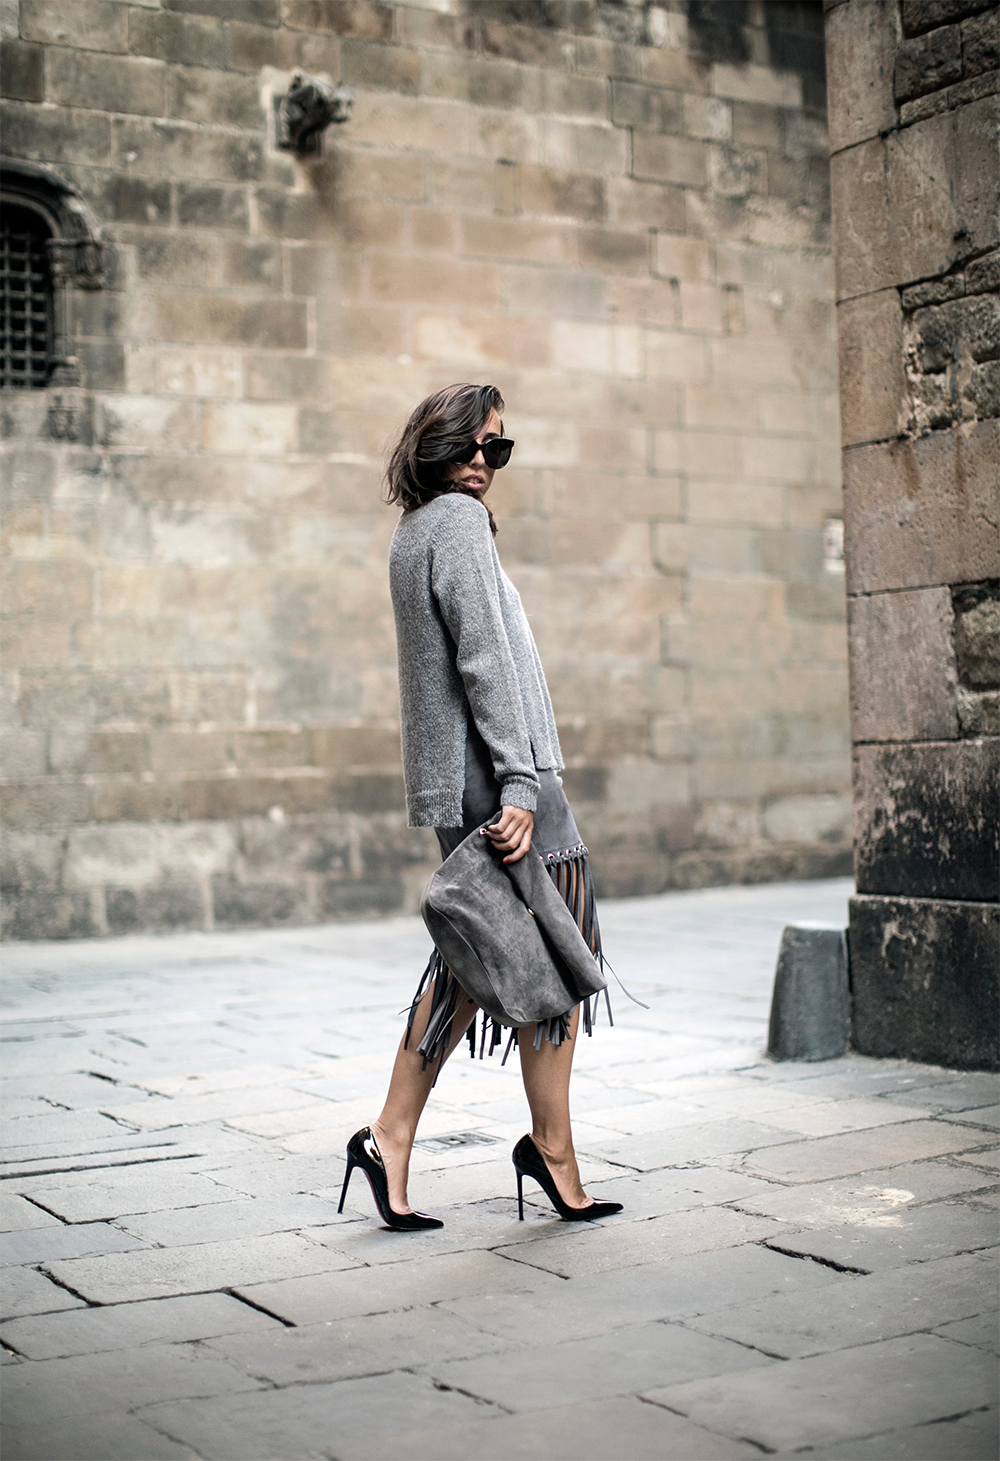 sania-claus-demina-outfit-barcelona-grey-skirt-gina-tricot-christian-louboutin-pigalle-120-mm-pumps-shoes_1